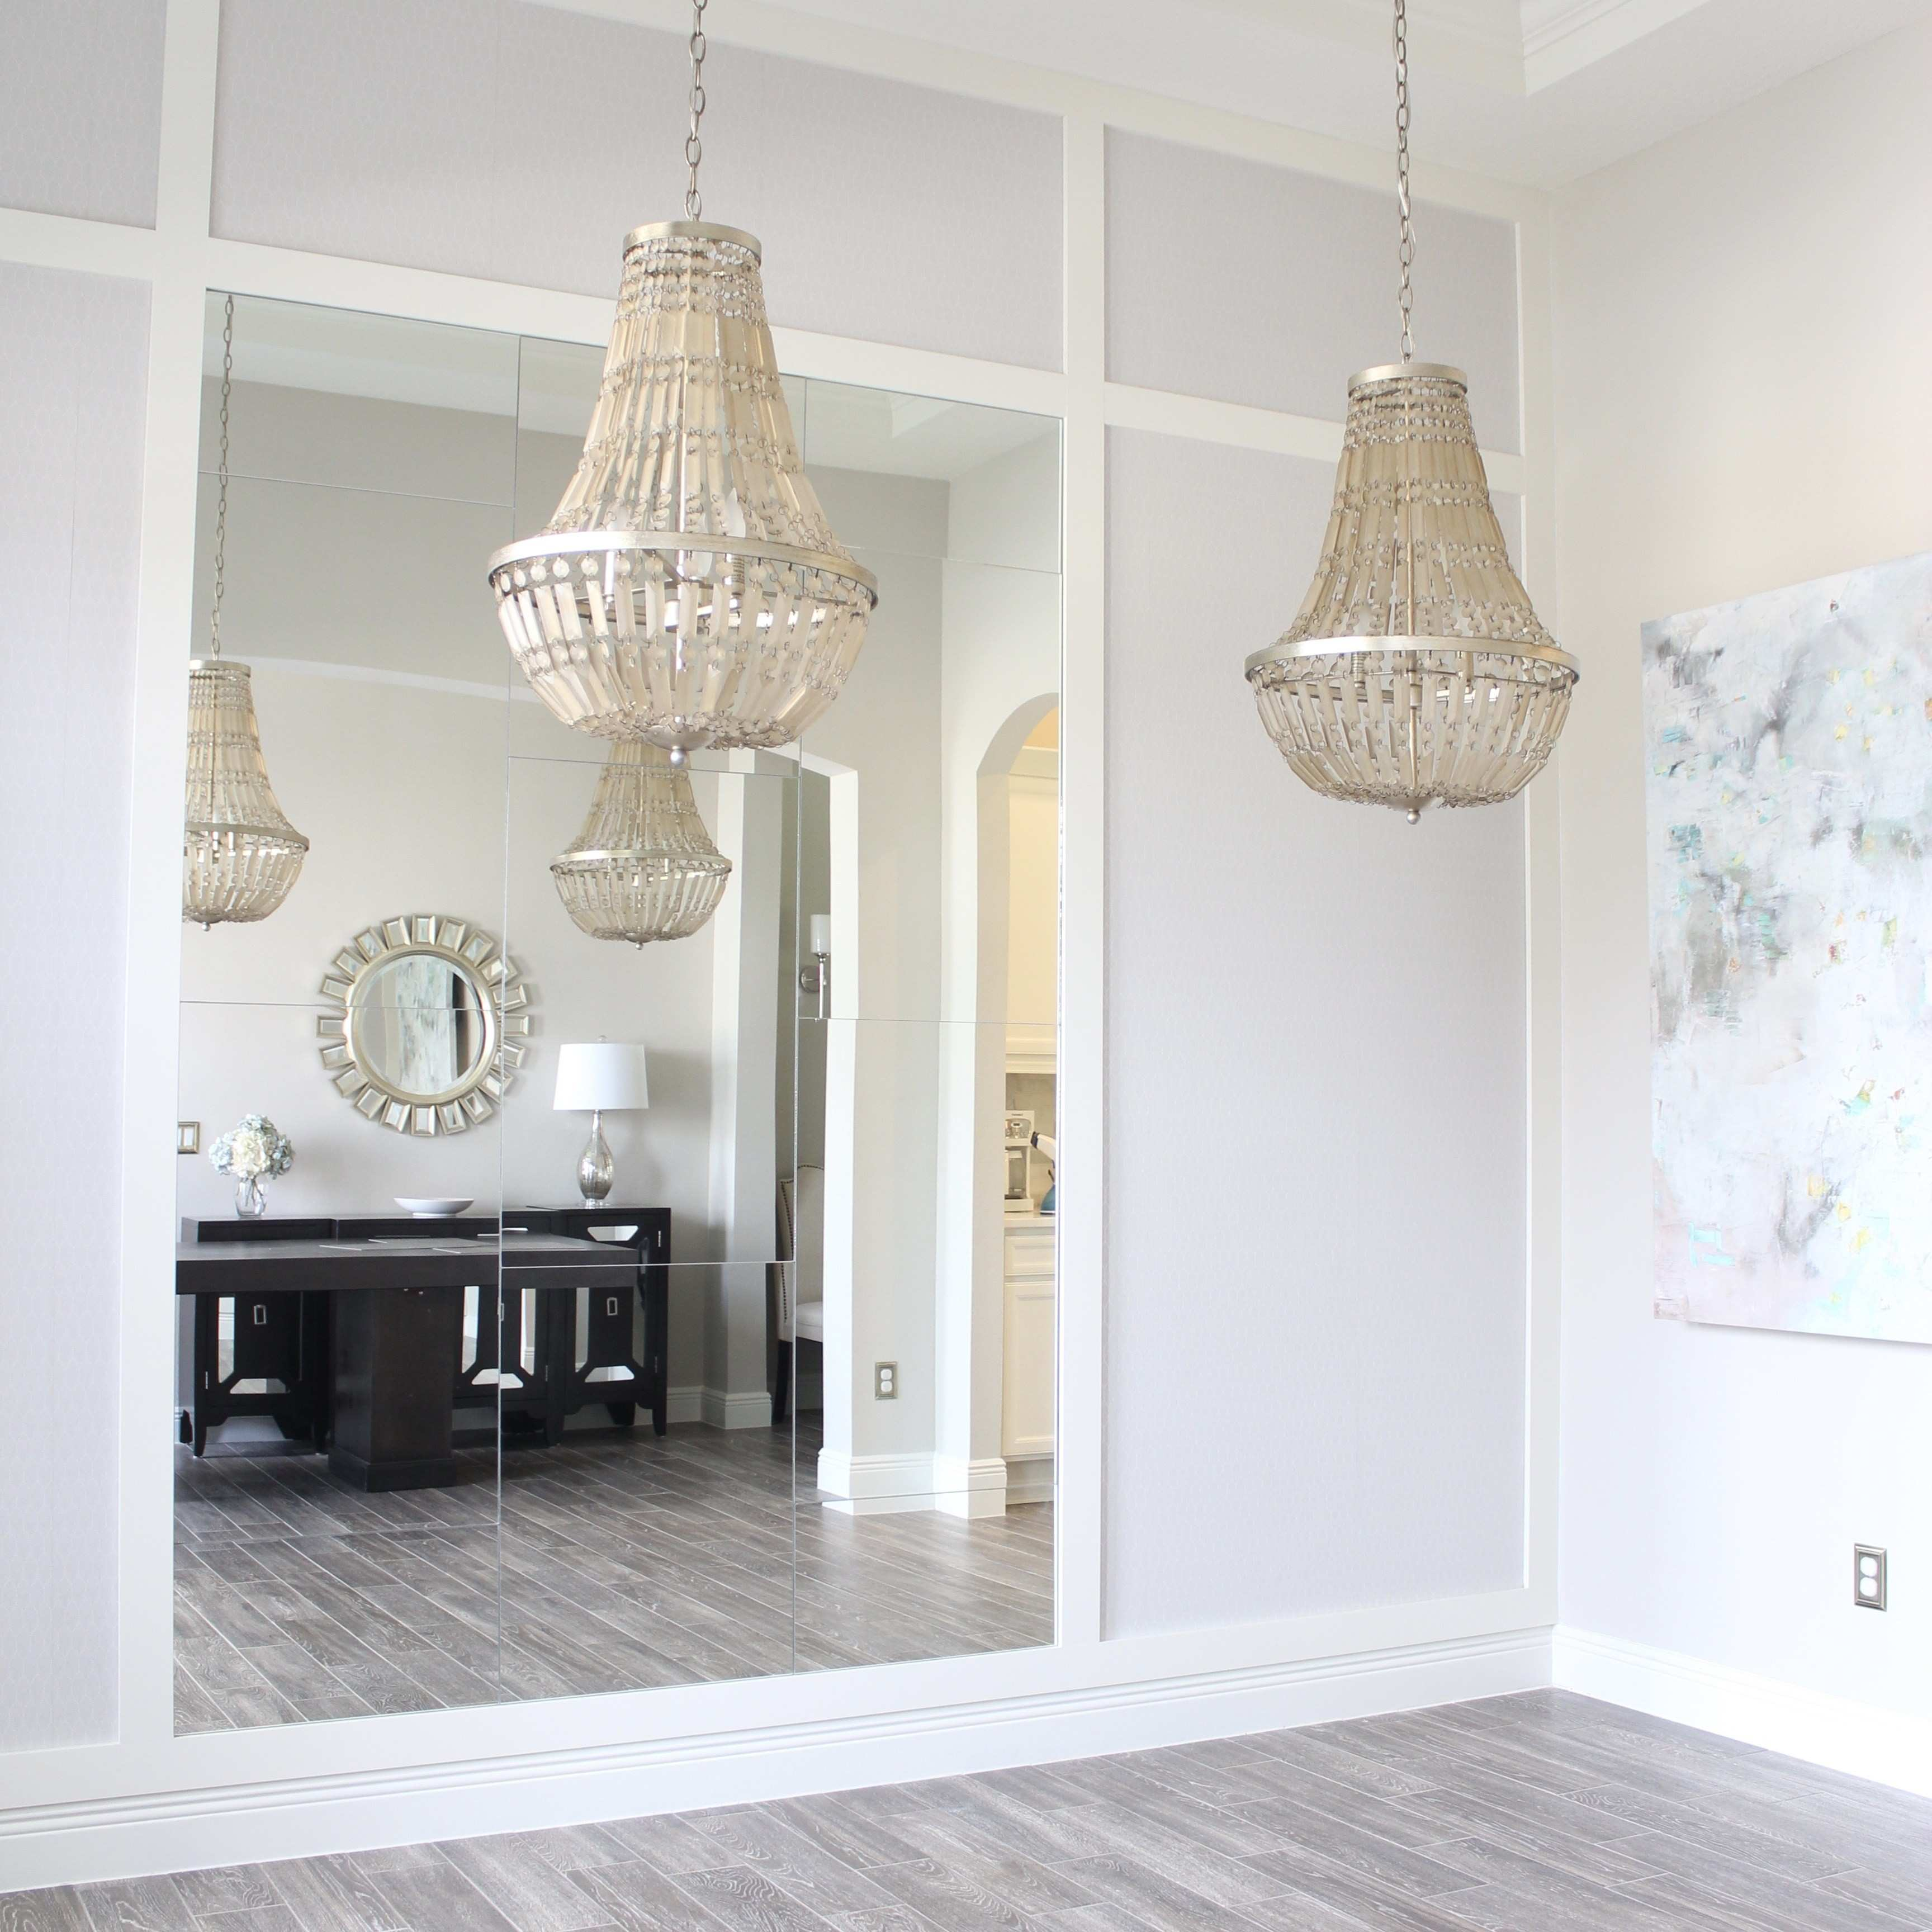 Large Ornate Mirrors For Wall Best Of Fresh Stylish Walls